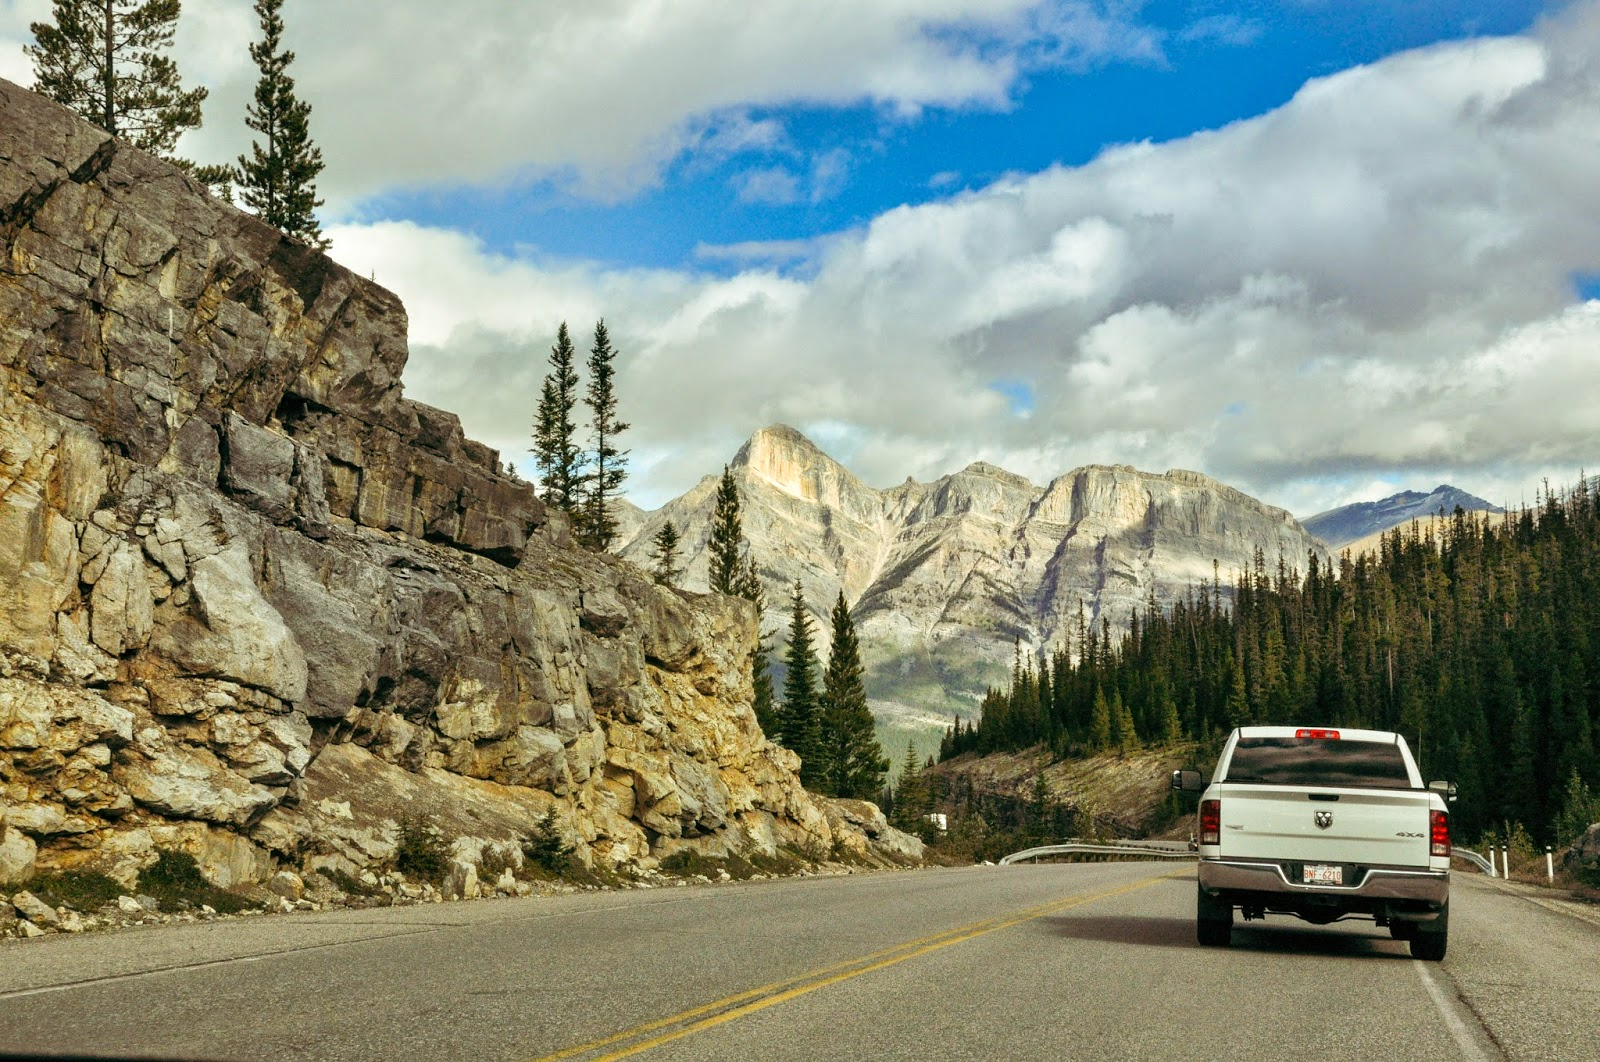 Road trip to Banff, rockies.